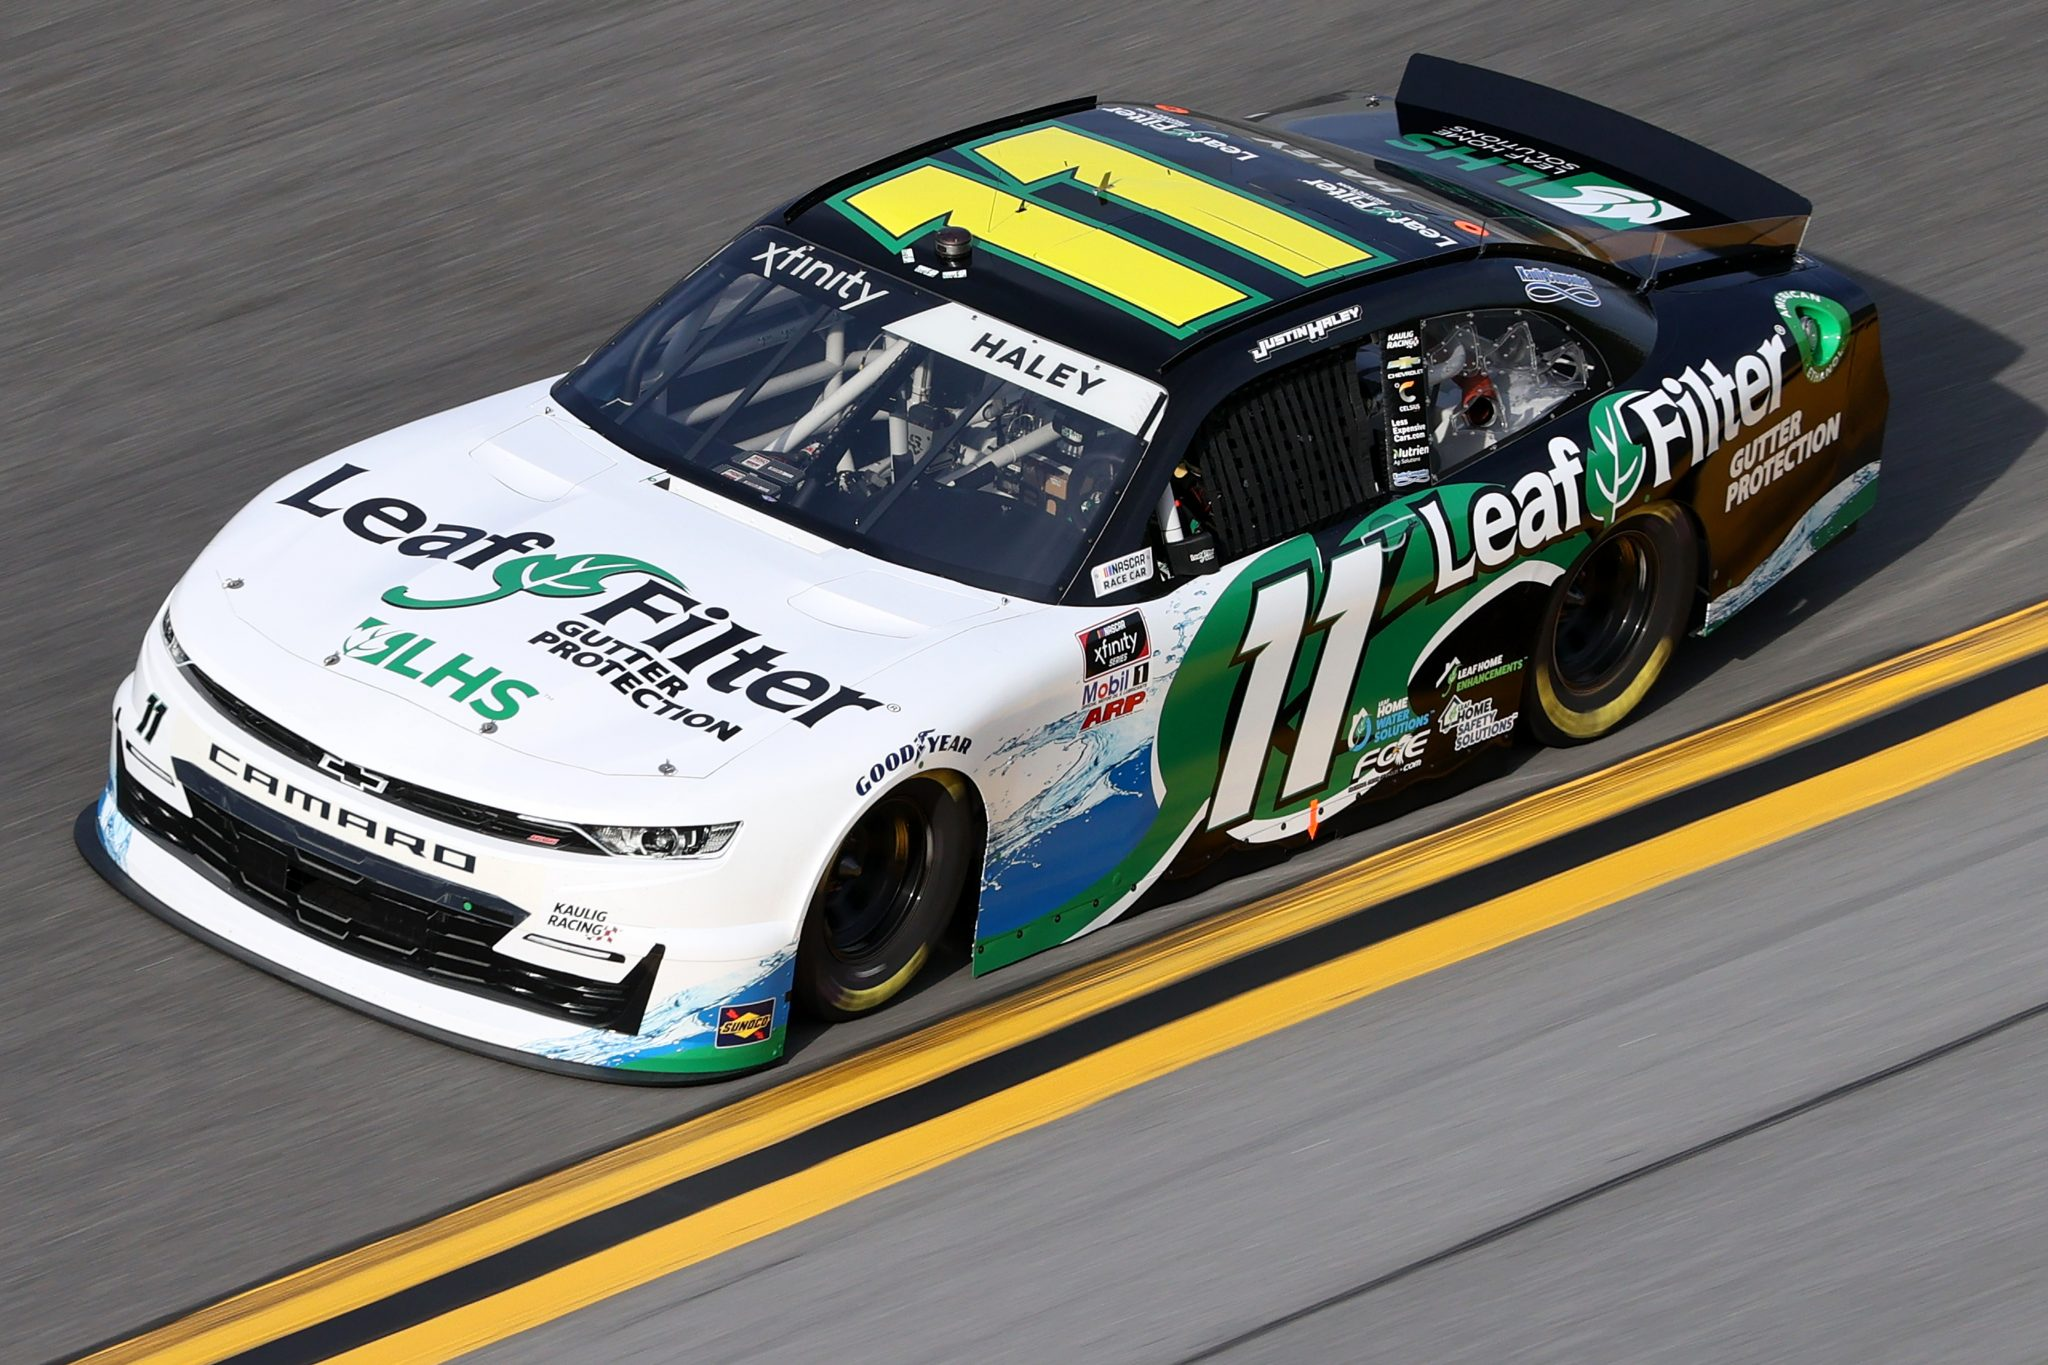 DAYTONA BEACH, FLORIDA - FEBRUARY 12: Justin Haley, driver of the #11 LeafFilter Gutter Protection Chevrolet, practices for the NASCAR Xfinity Series Beef. It's What's For Dinner. 300 at Daytona International Speedway on February 12, 2021 in Daytona Beach, Florida. (Photo by James Gilbert/Getty Images) | Getty Images